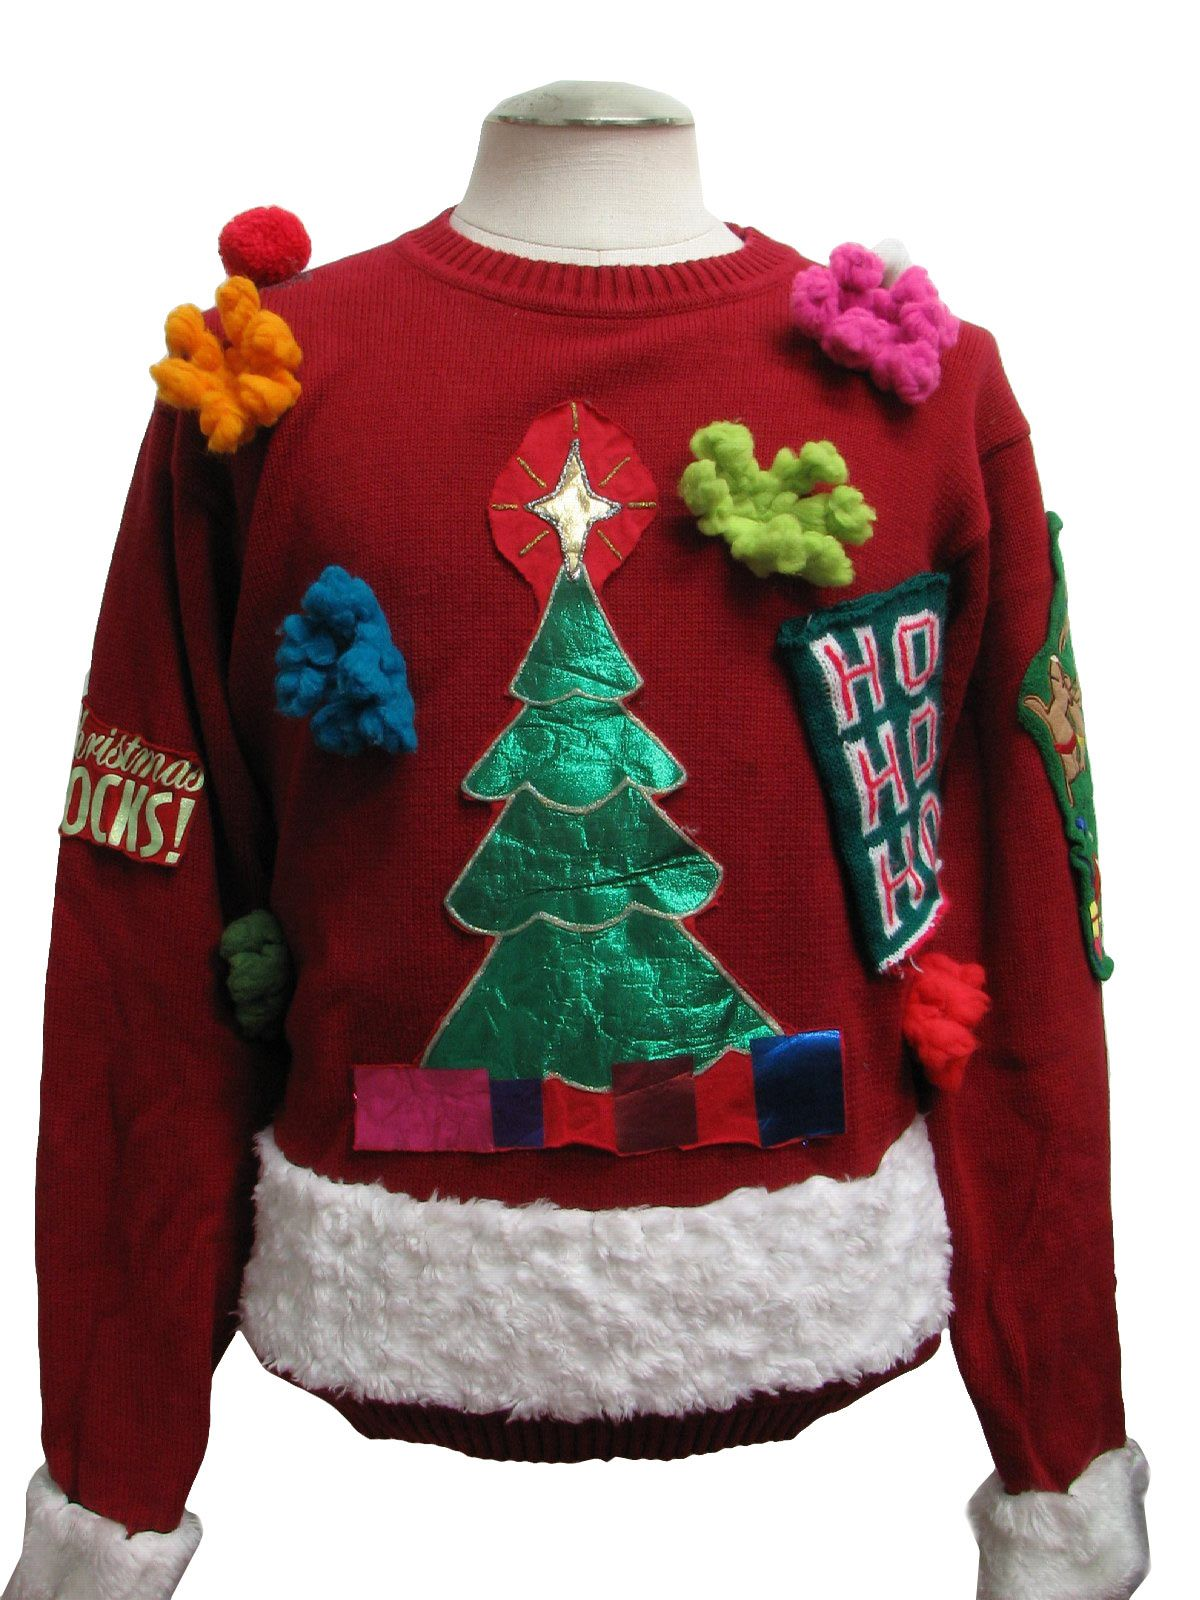 Pin on Ugly sweater